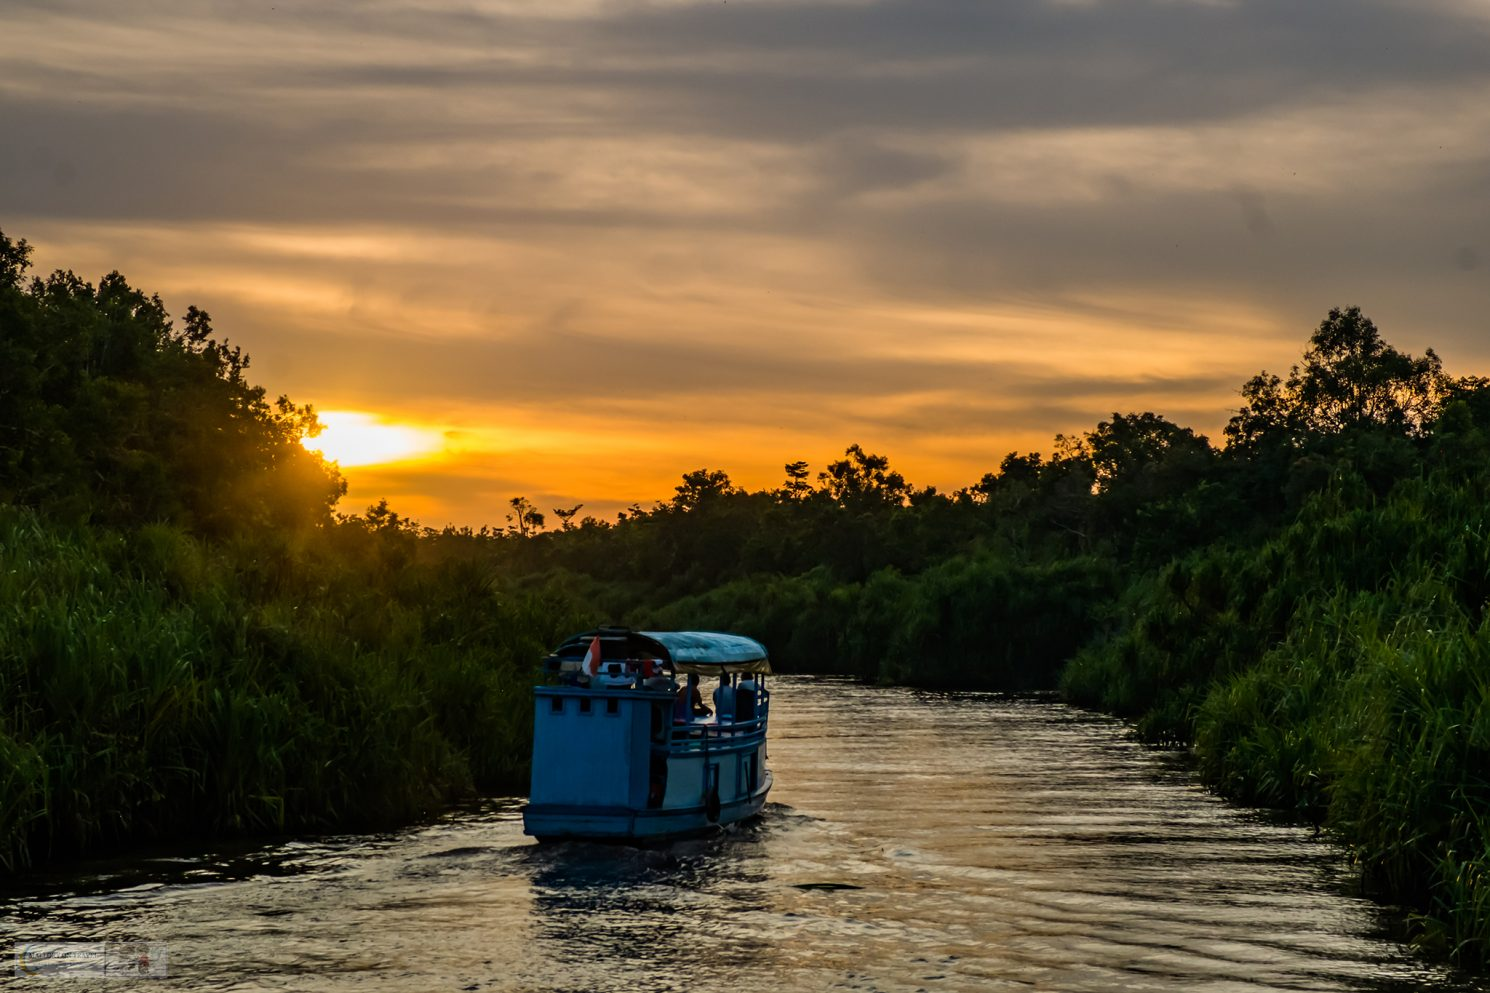 A sunset cruise on the Sekonyer River, Tanjung Puting National Park, Kalimantan in Borneo, the Republic of Indonesia on Mallory on Travel adventure travel, photography, travel iain-mallory_indo-1-9